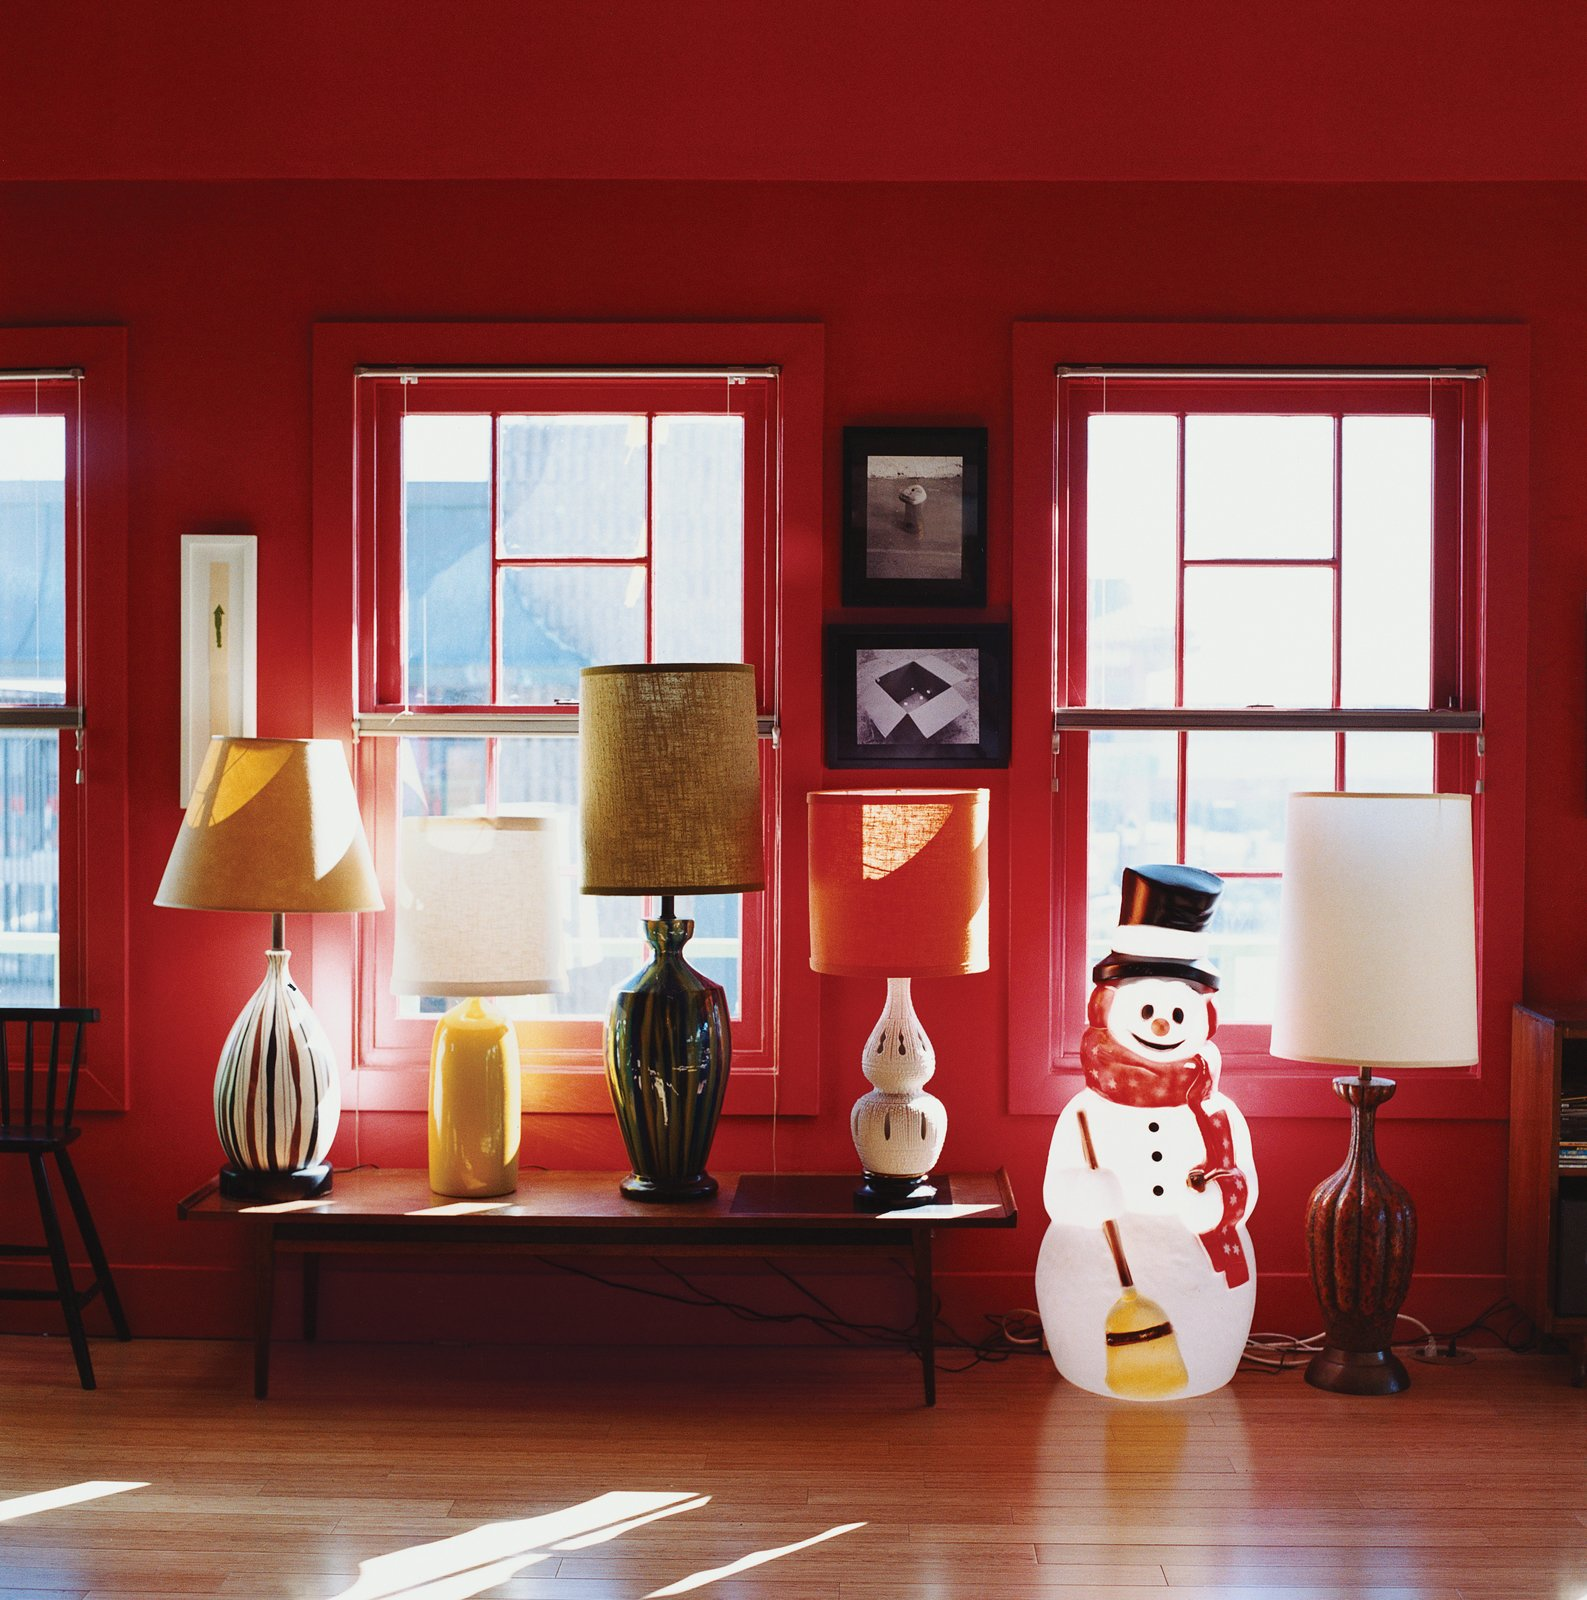 Thrift-store lamps and an illuminated snowman lend the loft a warm glow at night.  Photo 3 of 10 in Sun Mun Way Cool